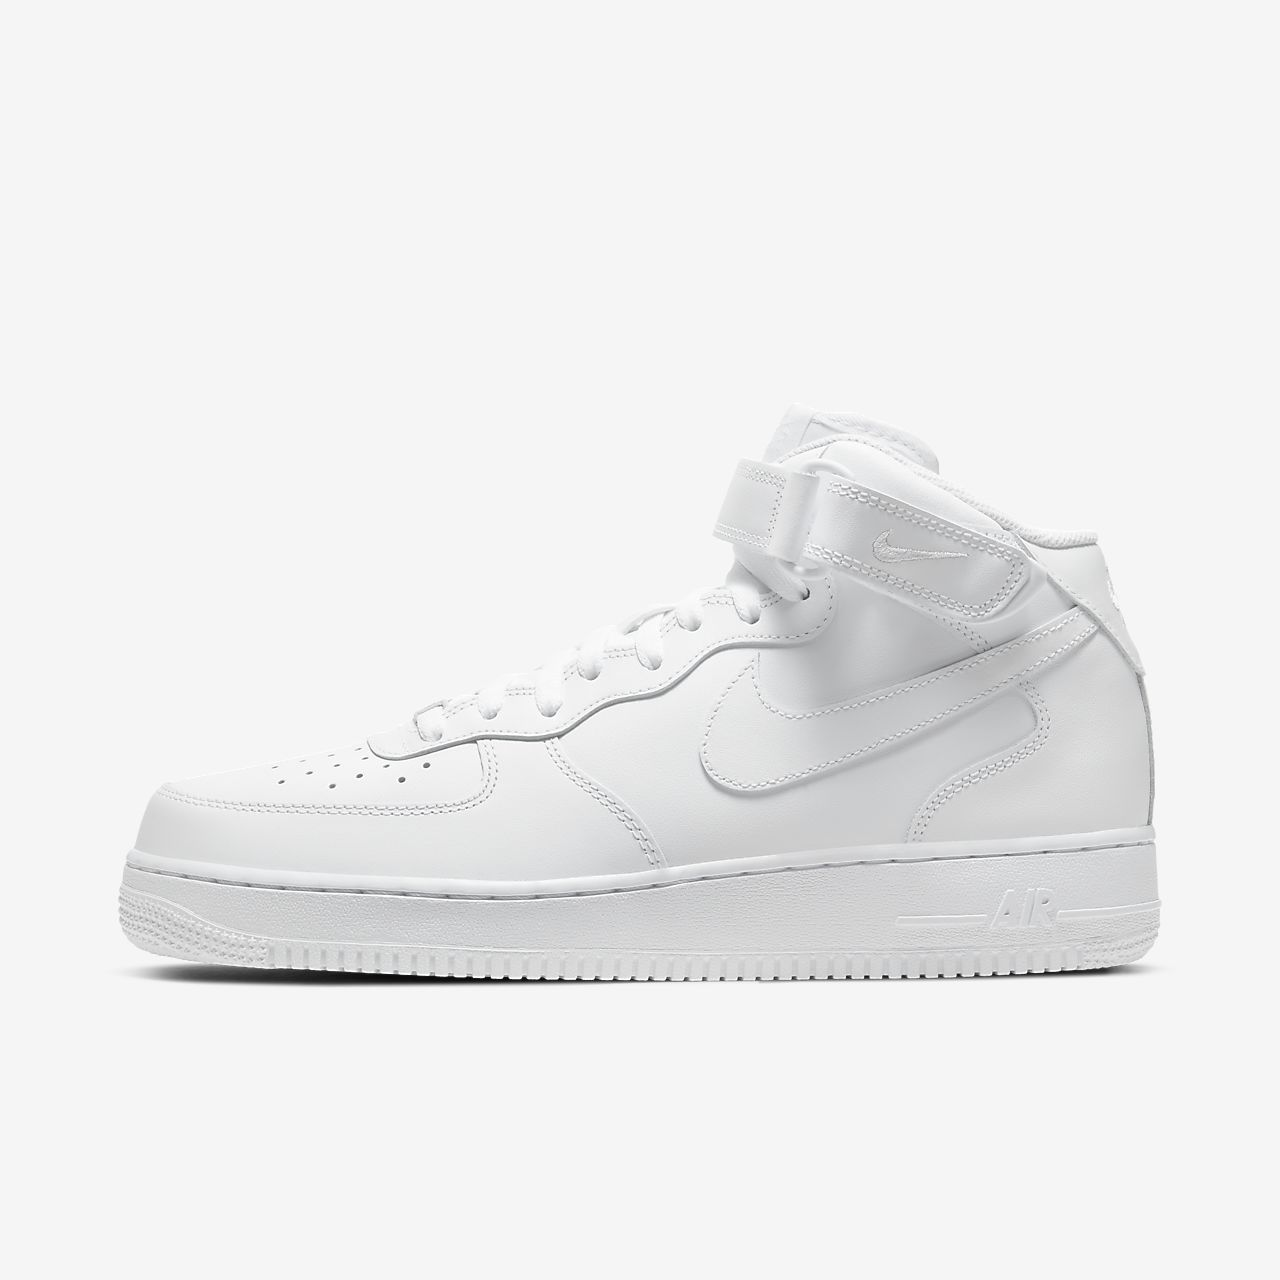 nike air force 1 mid 07 men's shoe nz